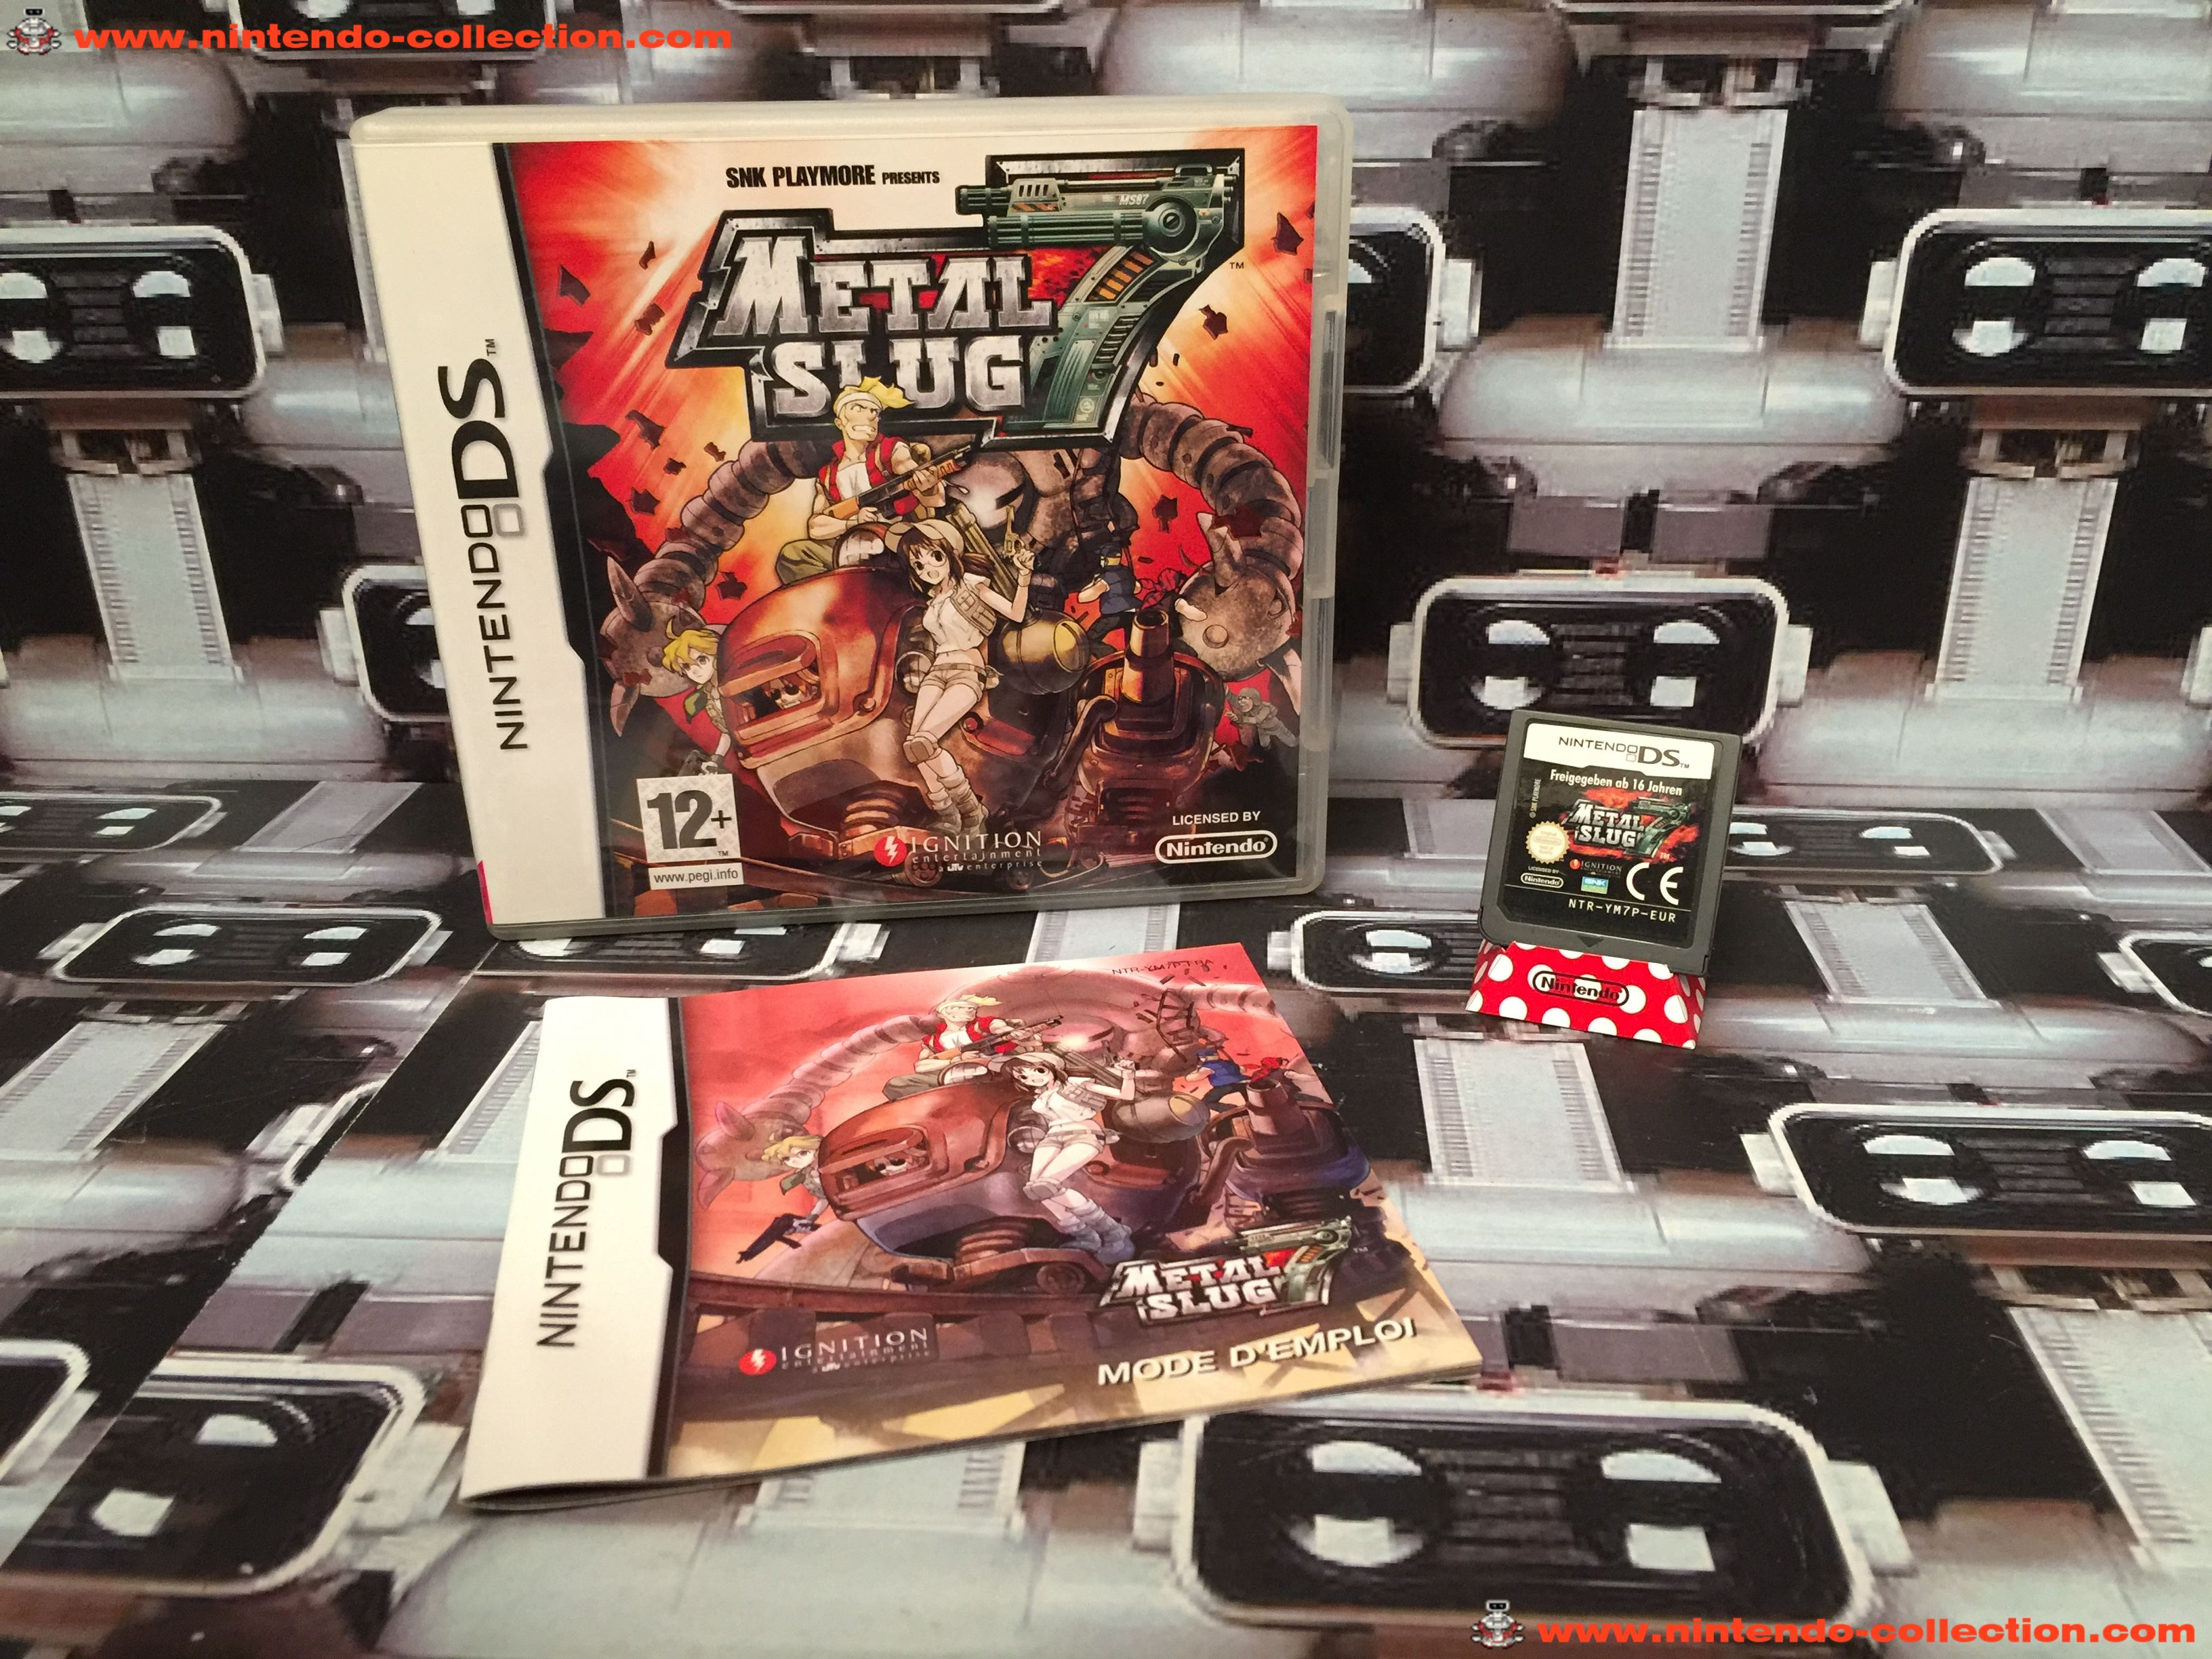 www.nintendo-collection.com - Nintendo DS Jeux Game Metal Slug 7 euro